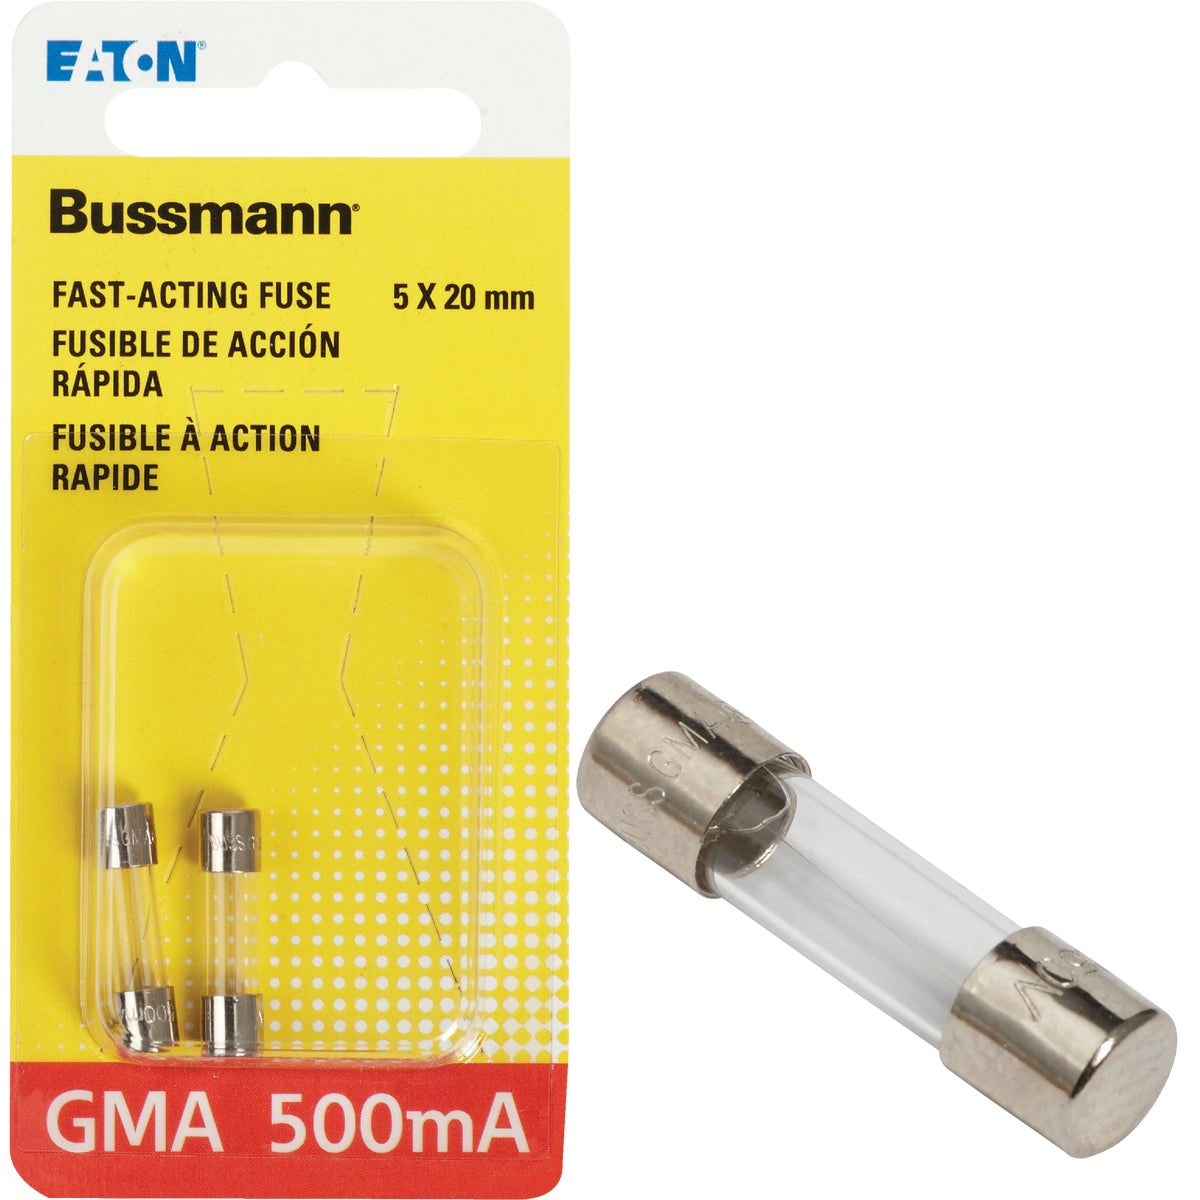 500MA FAST ACTING FUSE - BP/GMA-500MA by Bussmann Cooper